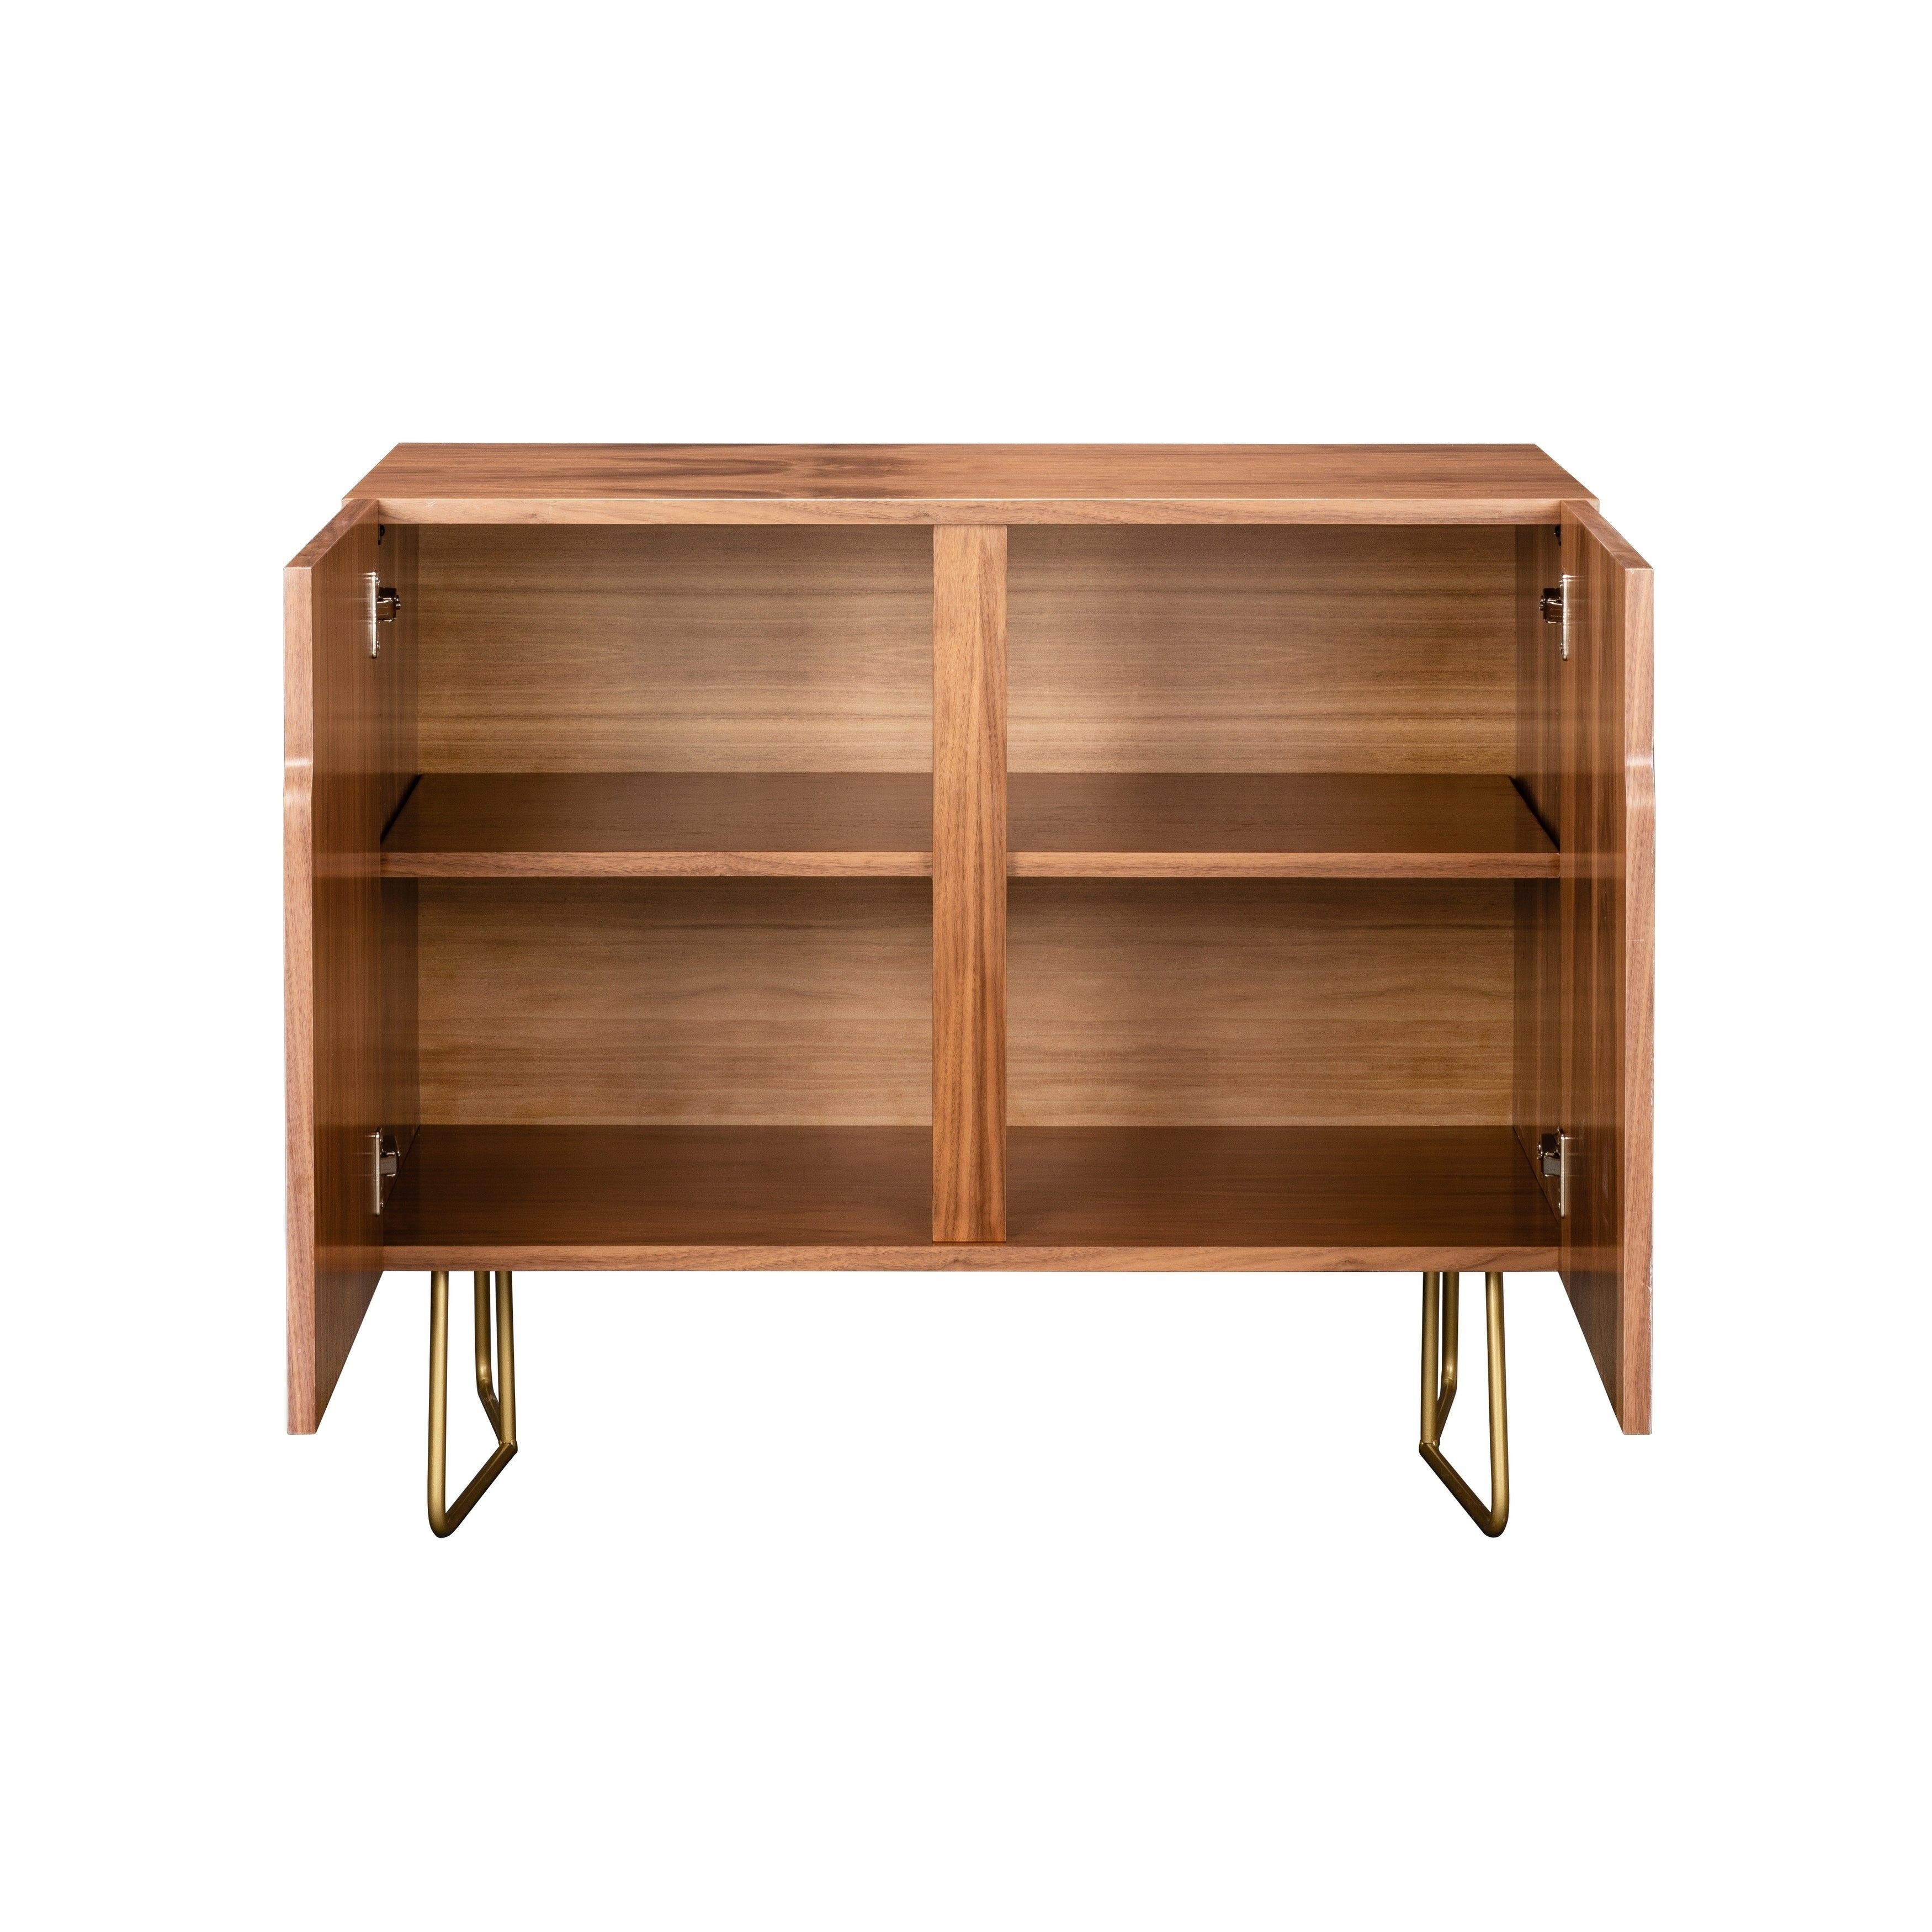 Deny Designs Multi Colored Geometric Shapes Credenza (Birch Or Walnut, 3  Leg Options) Intended For Multi Colored Geometric Shapes Credenzas (Photo 8 of 30)